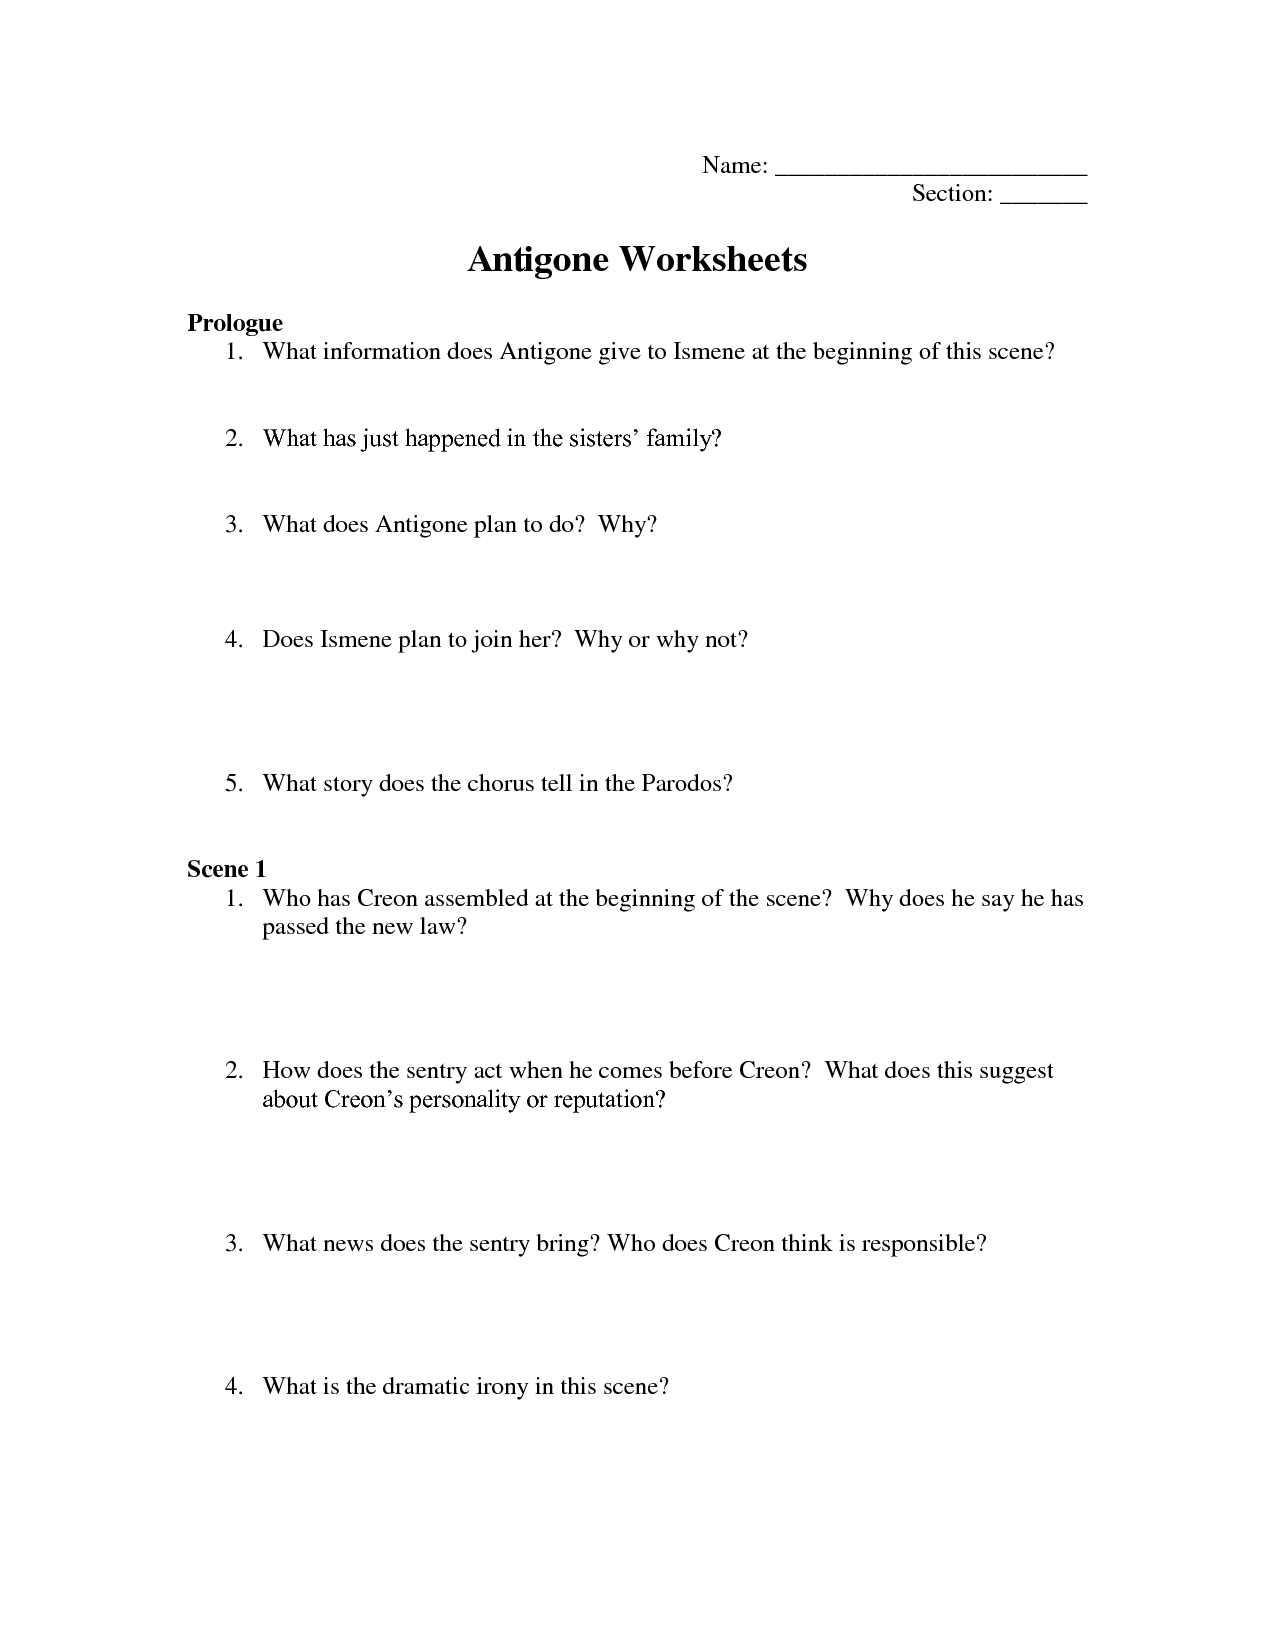 Worksheets Antigone Worksheet Answers antigone worksheets answers here httpwww mpsaz orgrmhsstaff answers